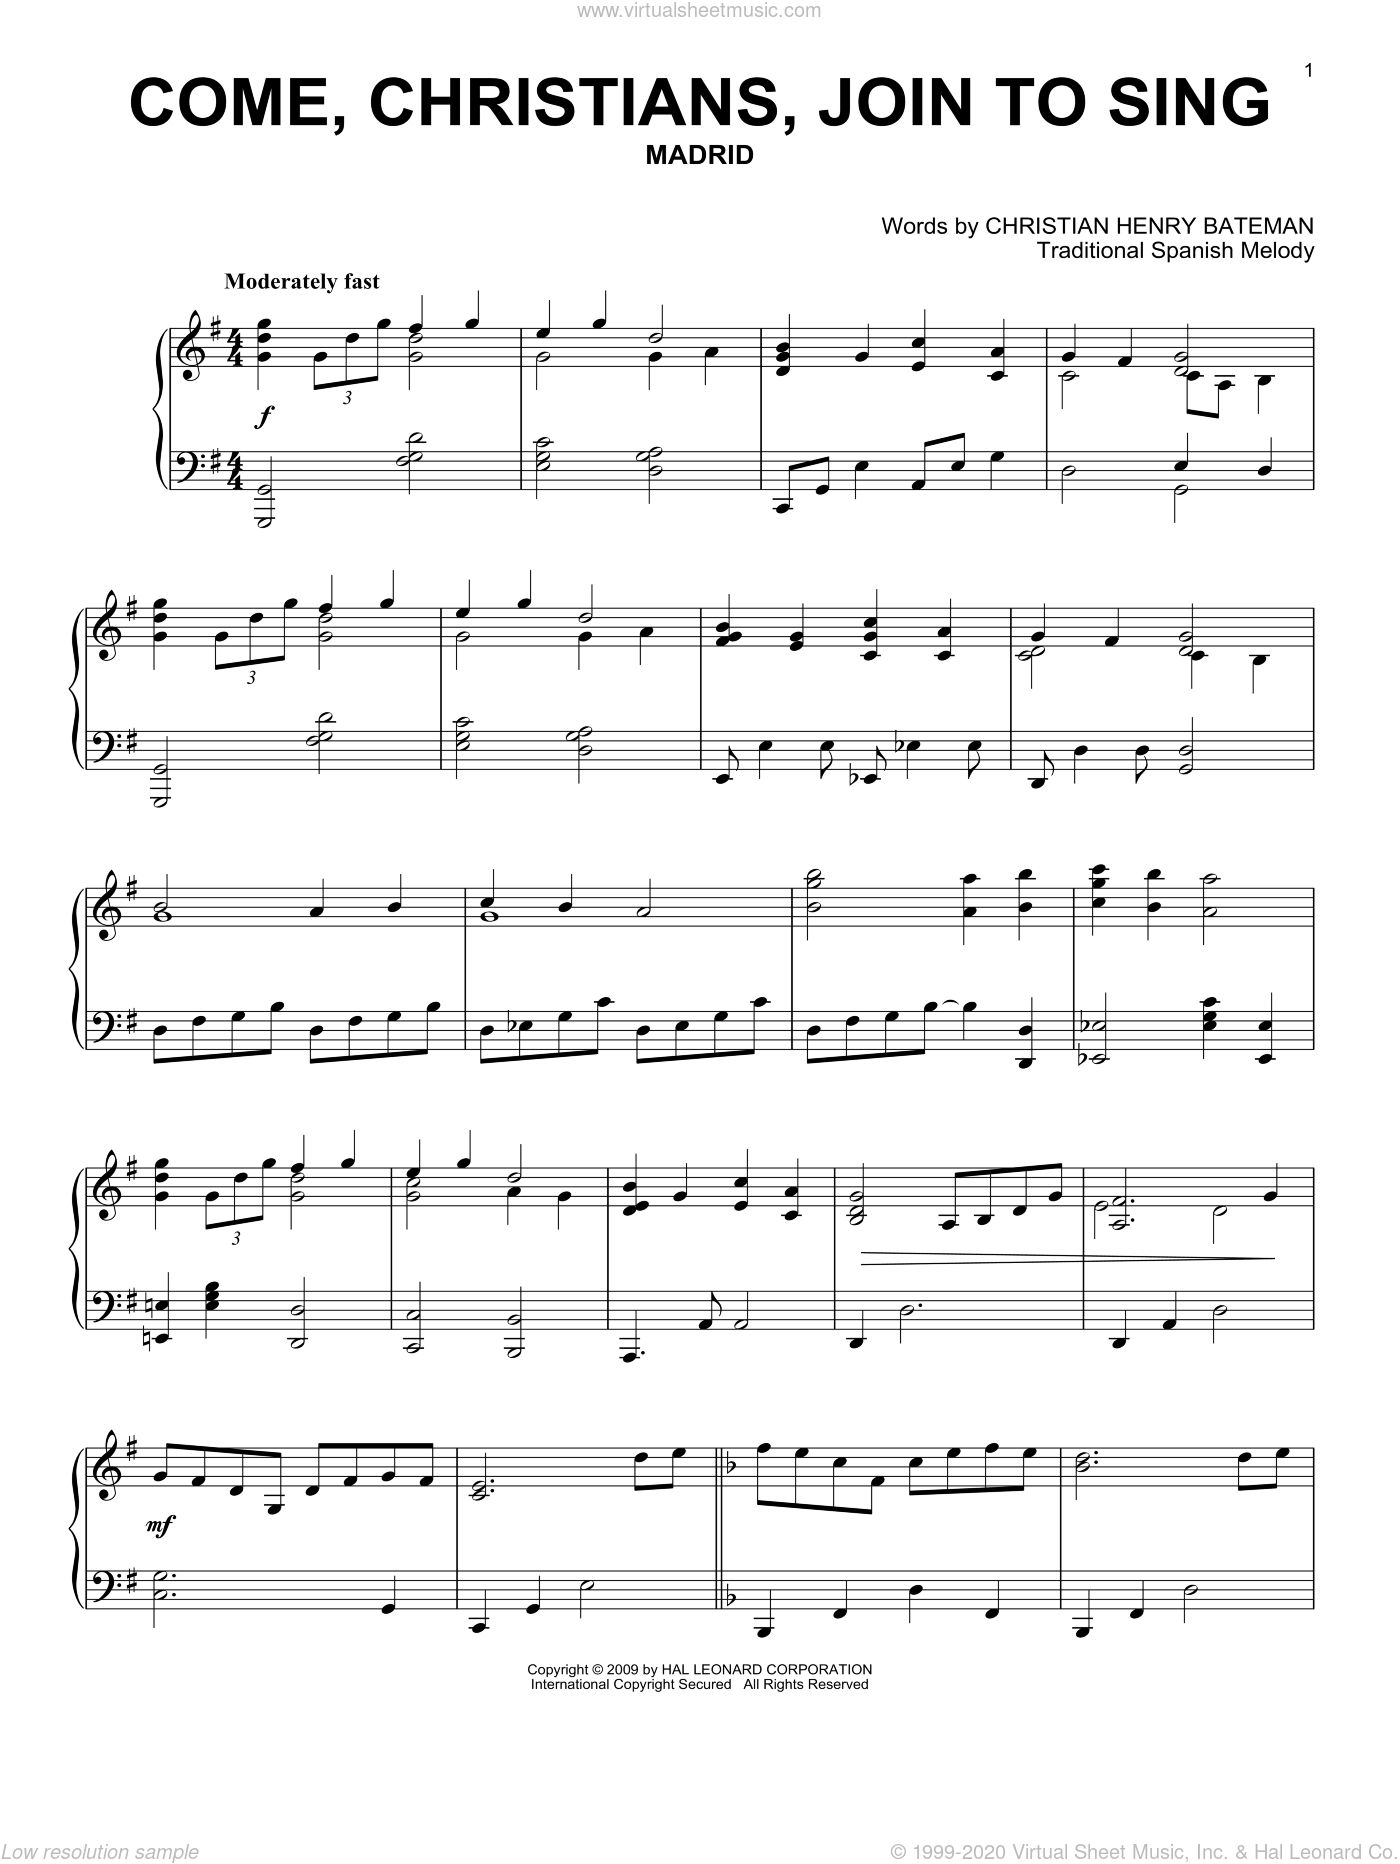 Come, Christians, Join To Sing sheet music for piano solo by Christian Henry Bateman and Miscellaneous, intermediate skill level